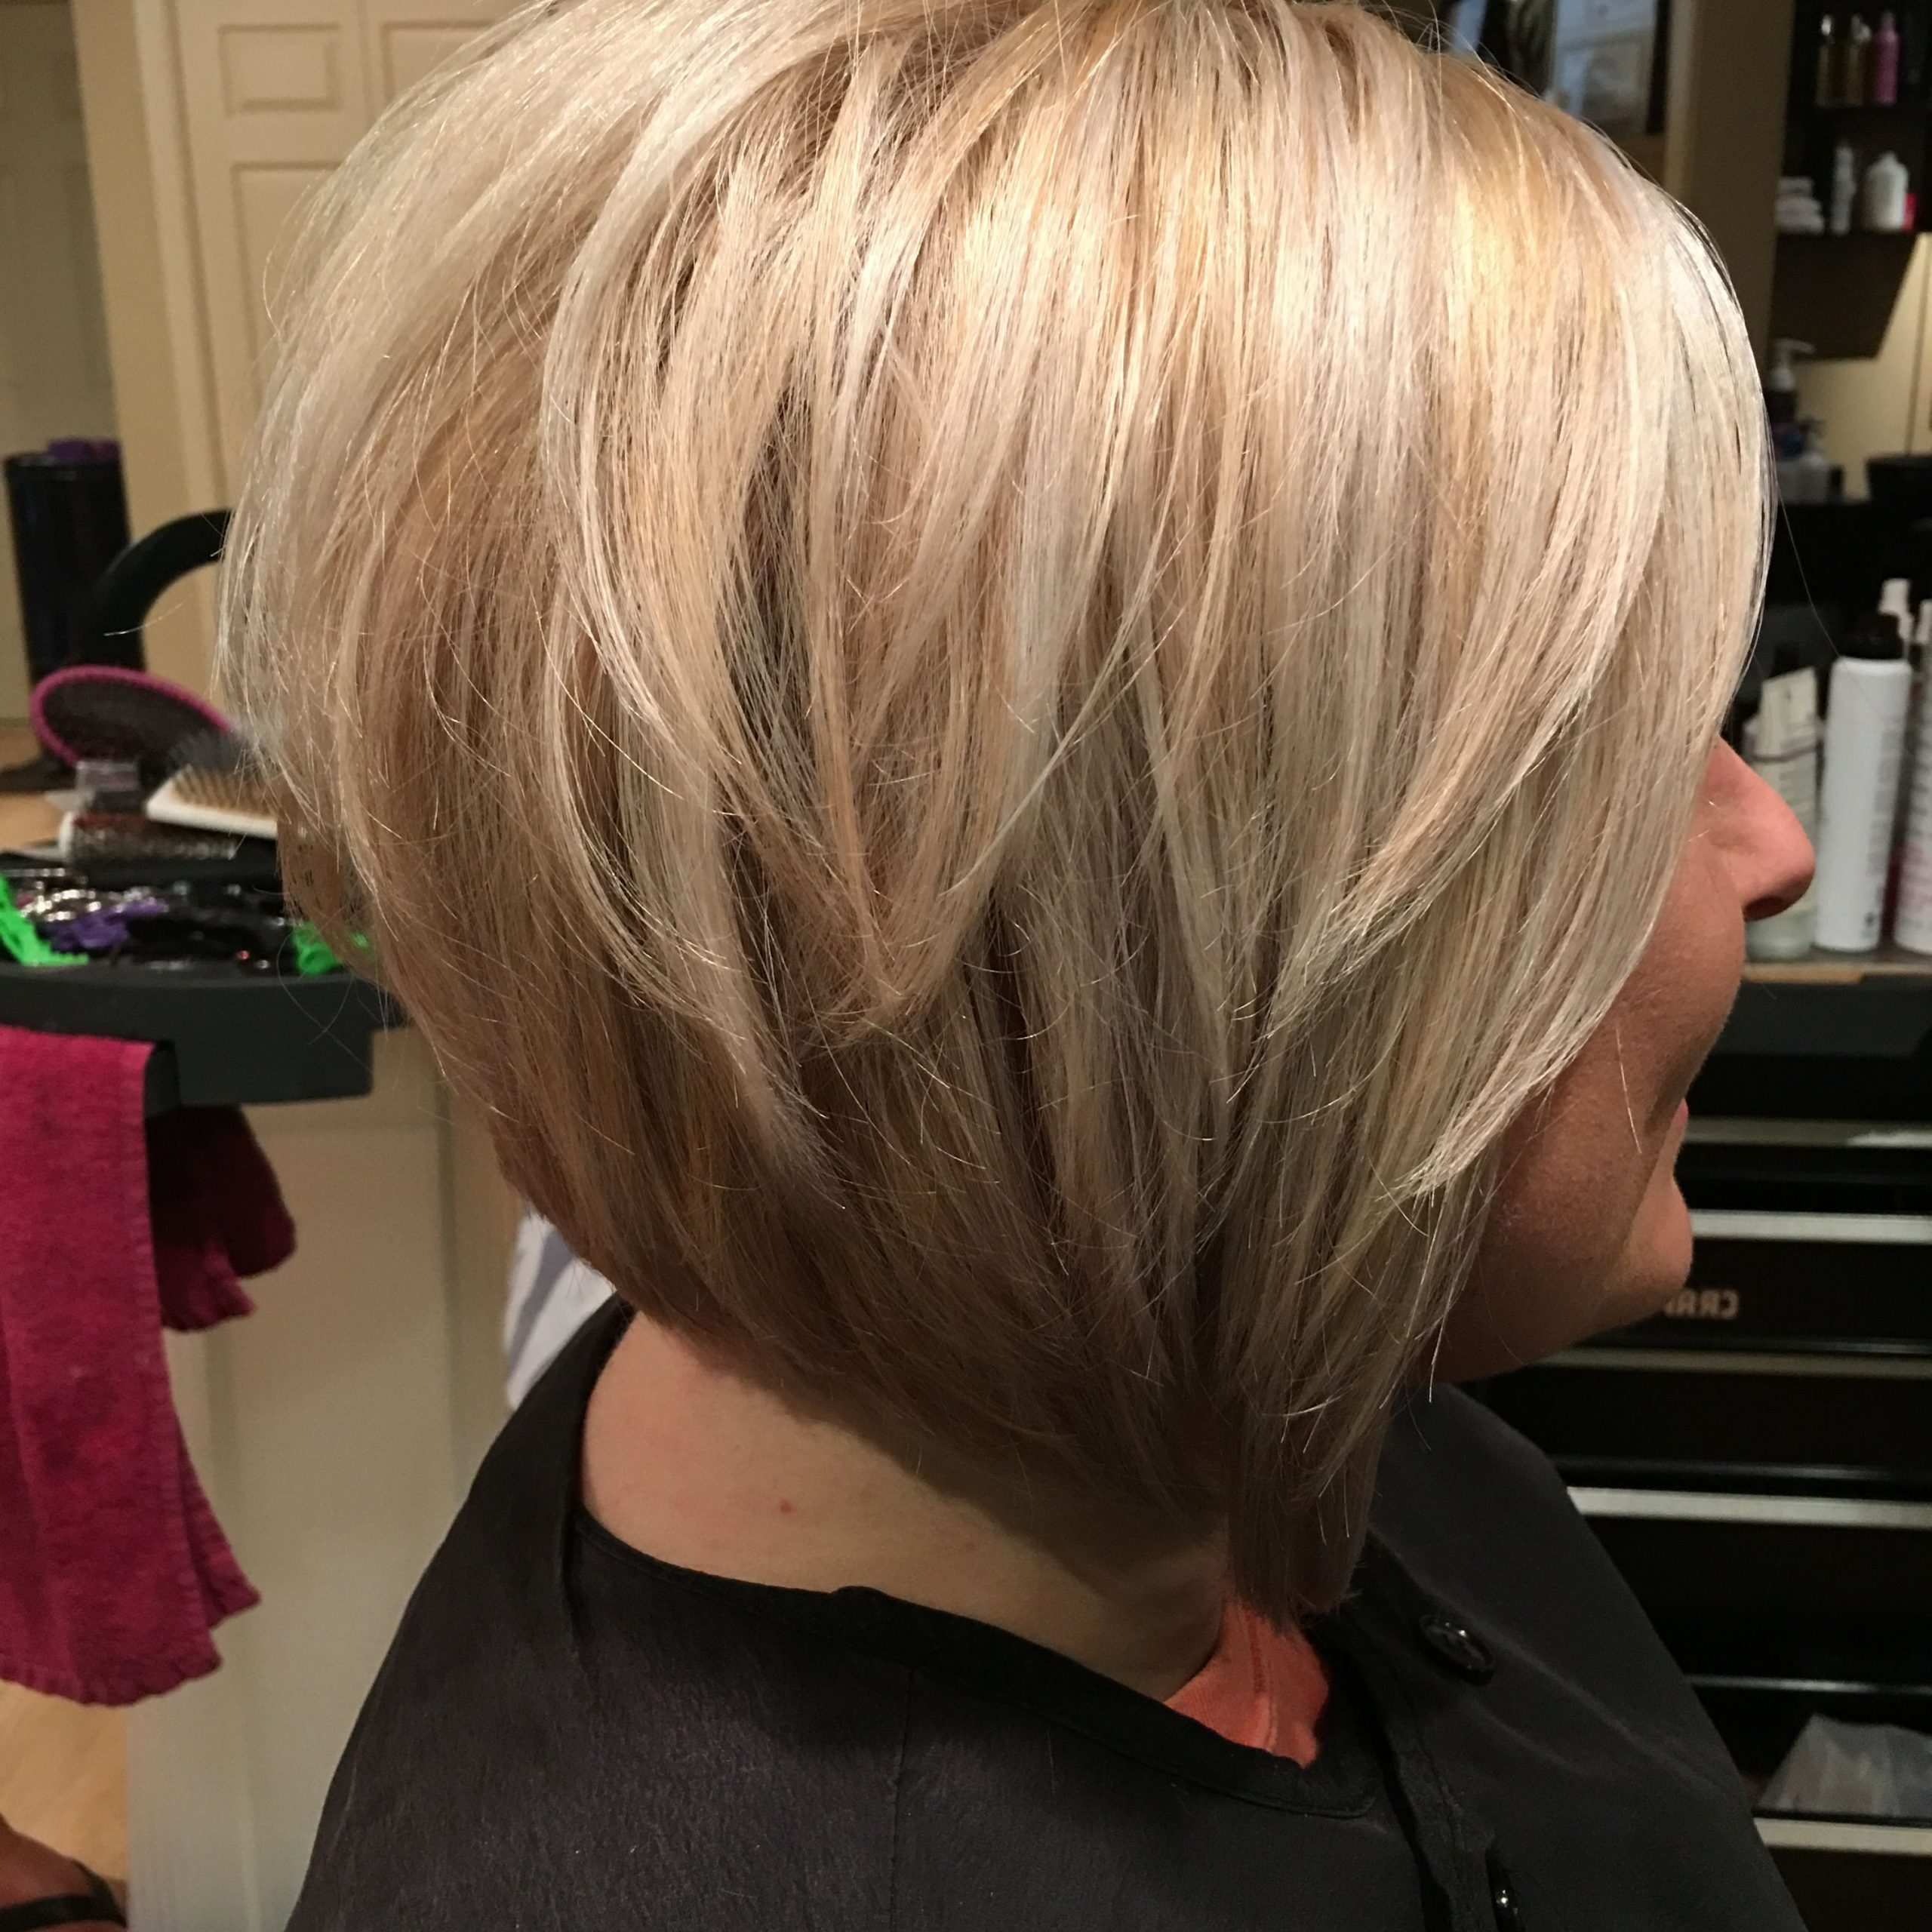 Blonde Graduated Bob In 2019 | Inverted Bob Hairstyles With Regard To Asymmetrical Shaggy Bob Hairstyles (View 13 of 20)